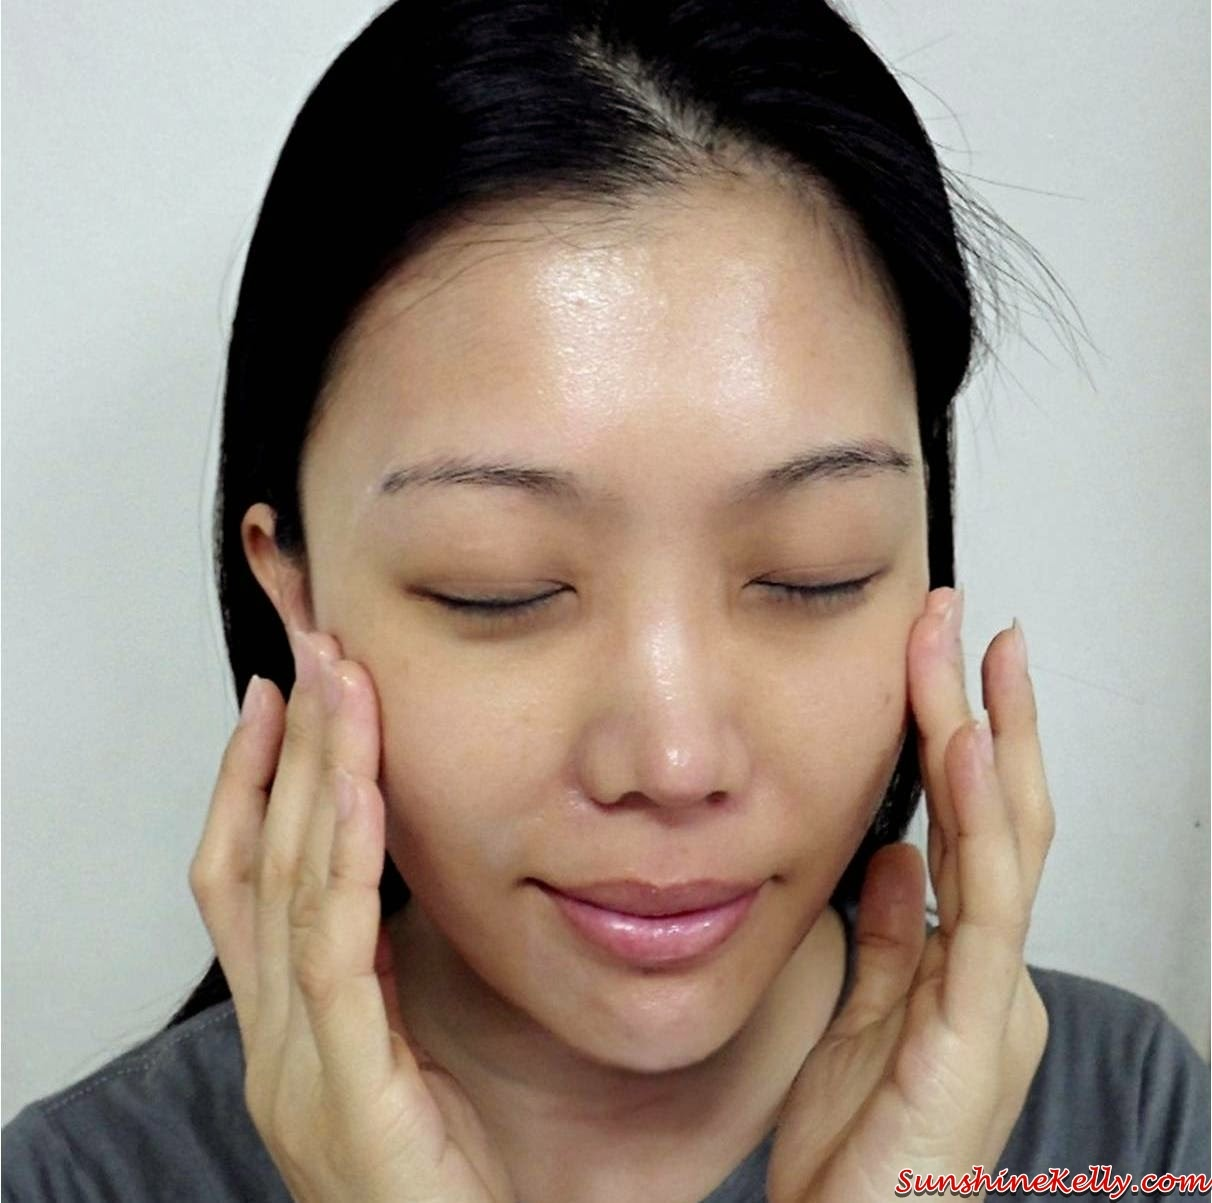 diy face massage at home, Menard Lisciare Review, menard, lisciare, menard lisciare, menard face massage step, japan skincare, japan beauty products, japan beauty week